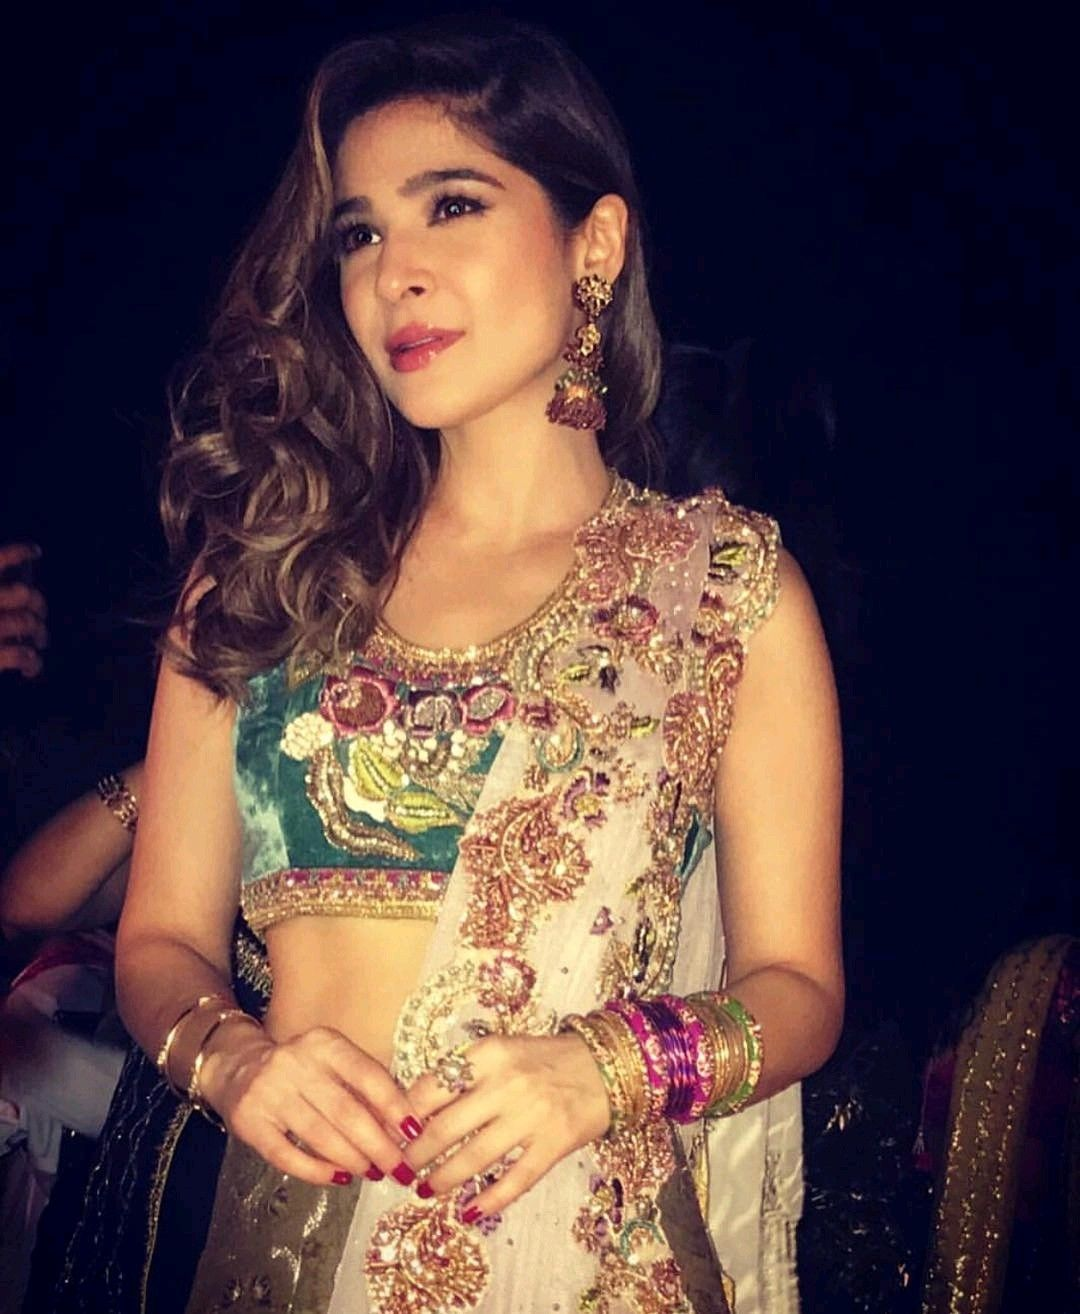 Ayesha Omar - Biography, Lifestyle, Age, Family and Much More!